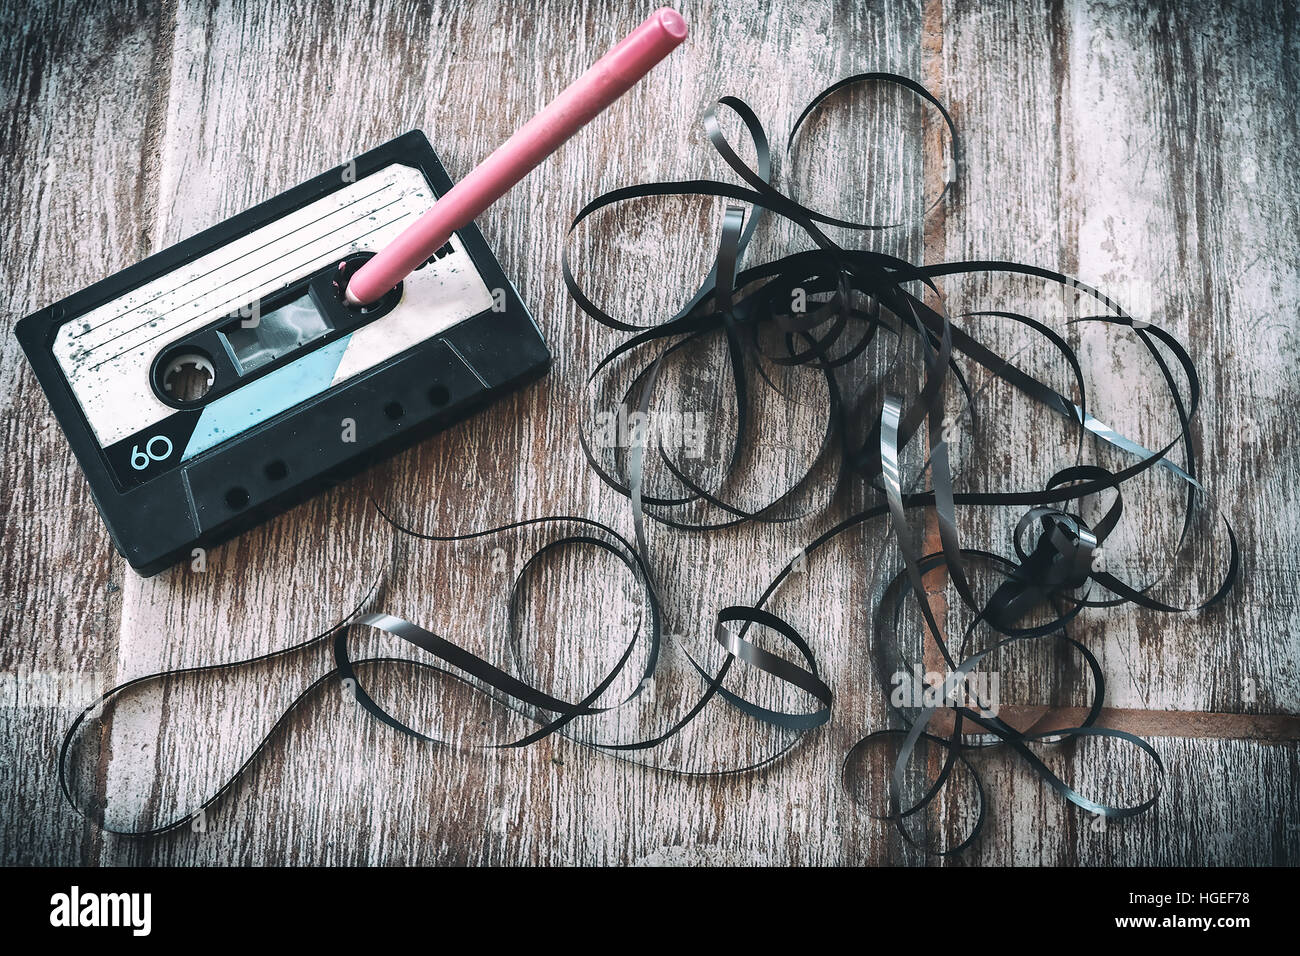 roll audio tape pencil vintage background - Stock Image